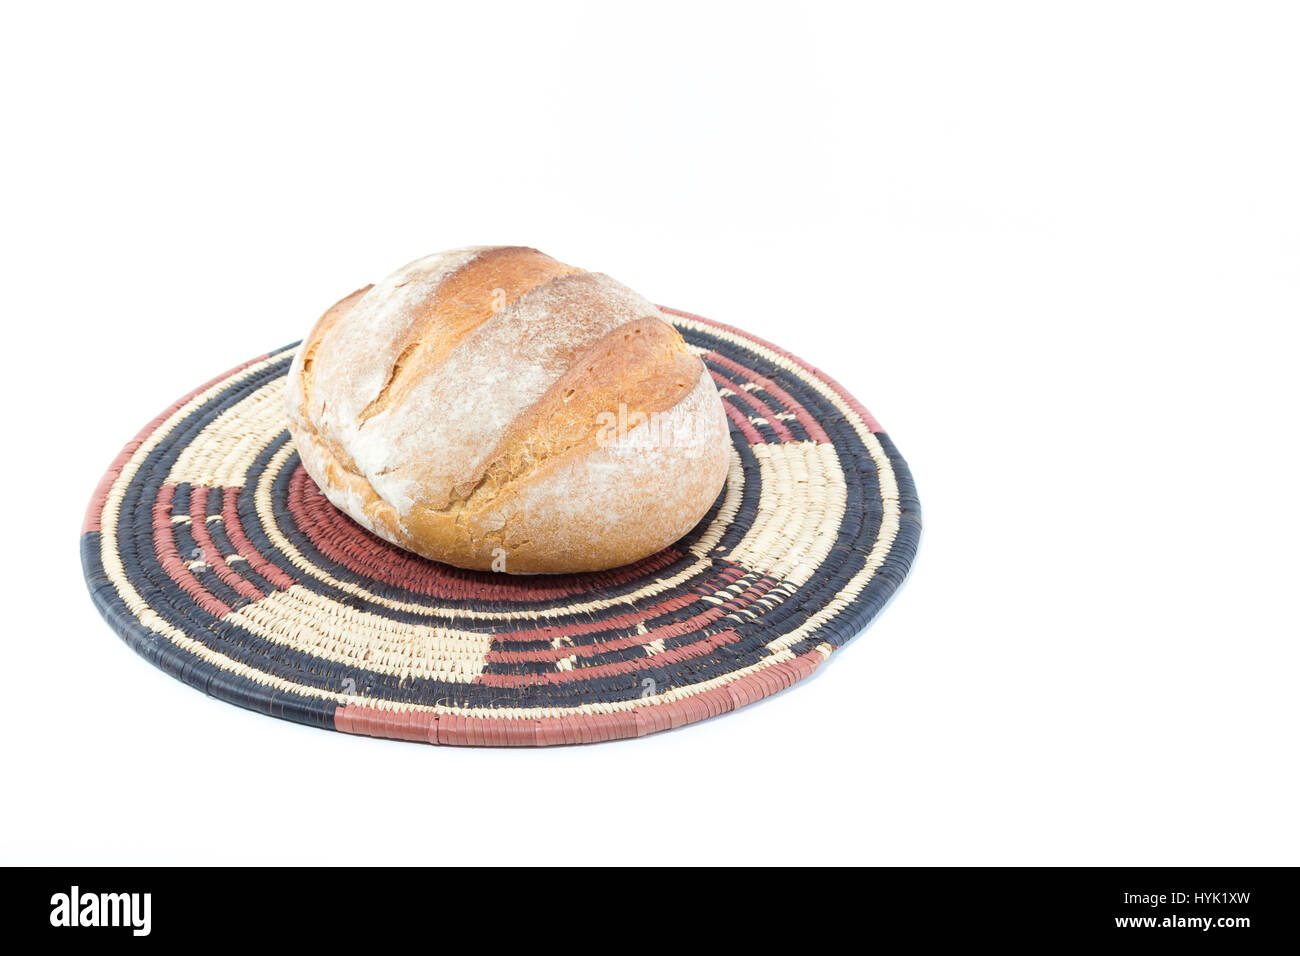 Crusty loaf of bread on a bamboo straw rustic placemat isolated on white background - Stock Image